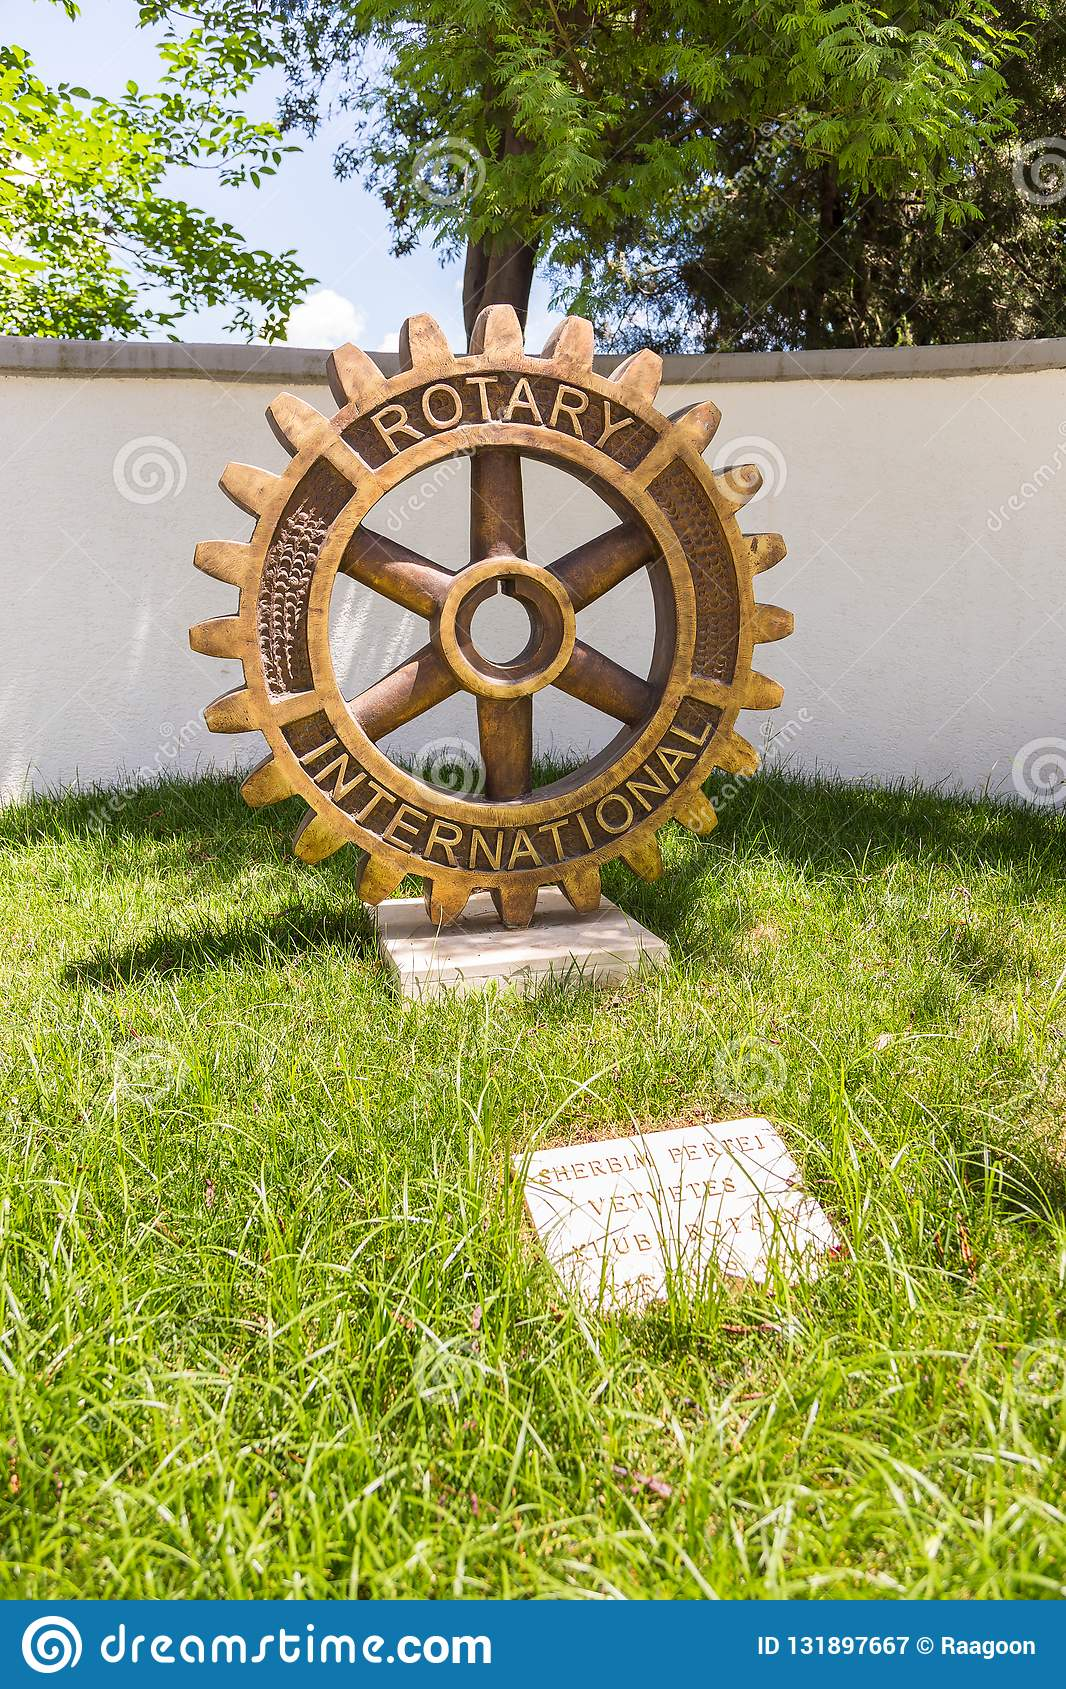 Rotary Club Monument in the center Tirana, Albania.